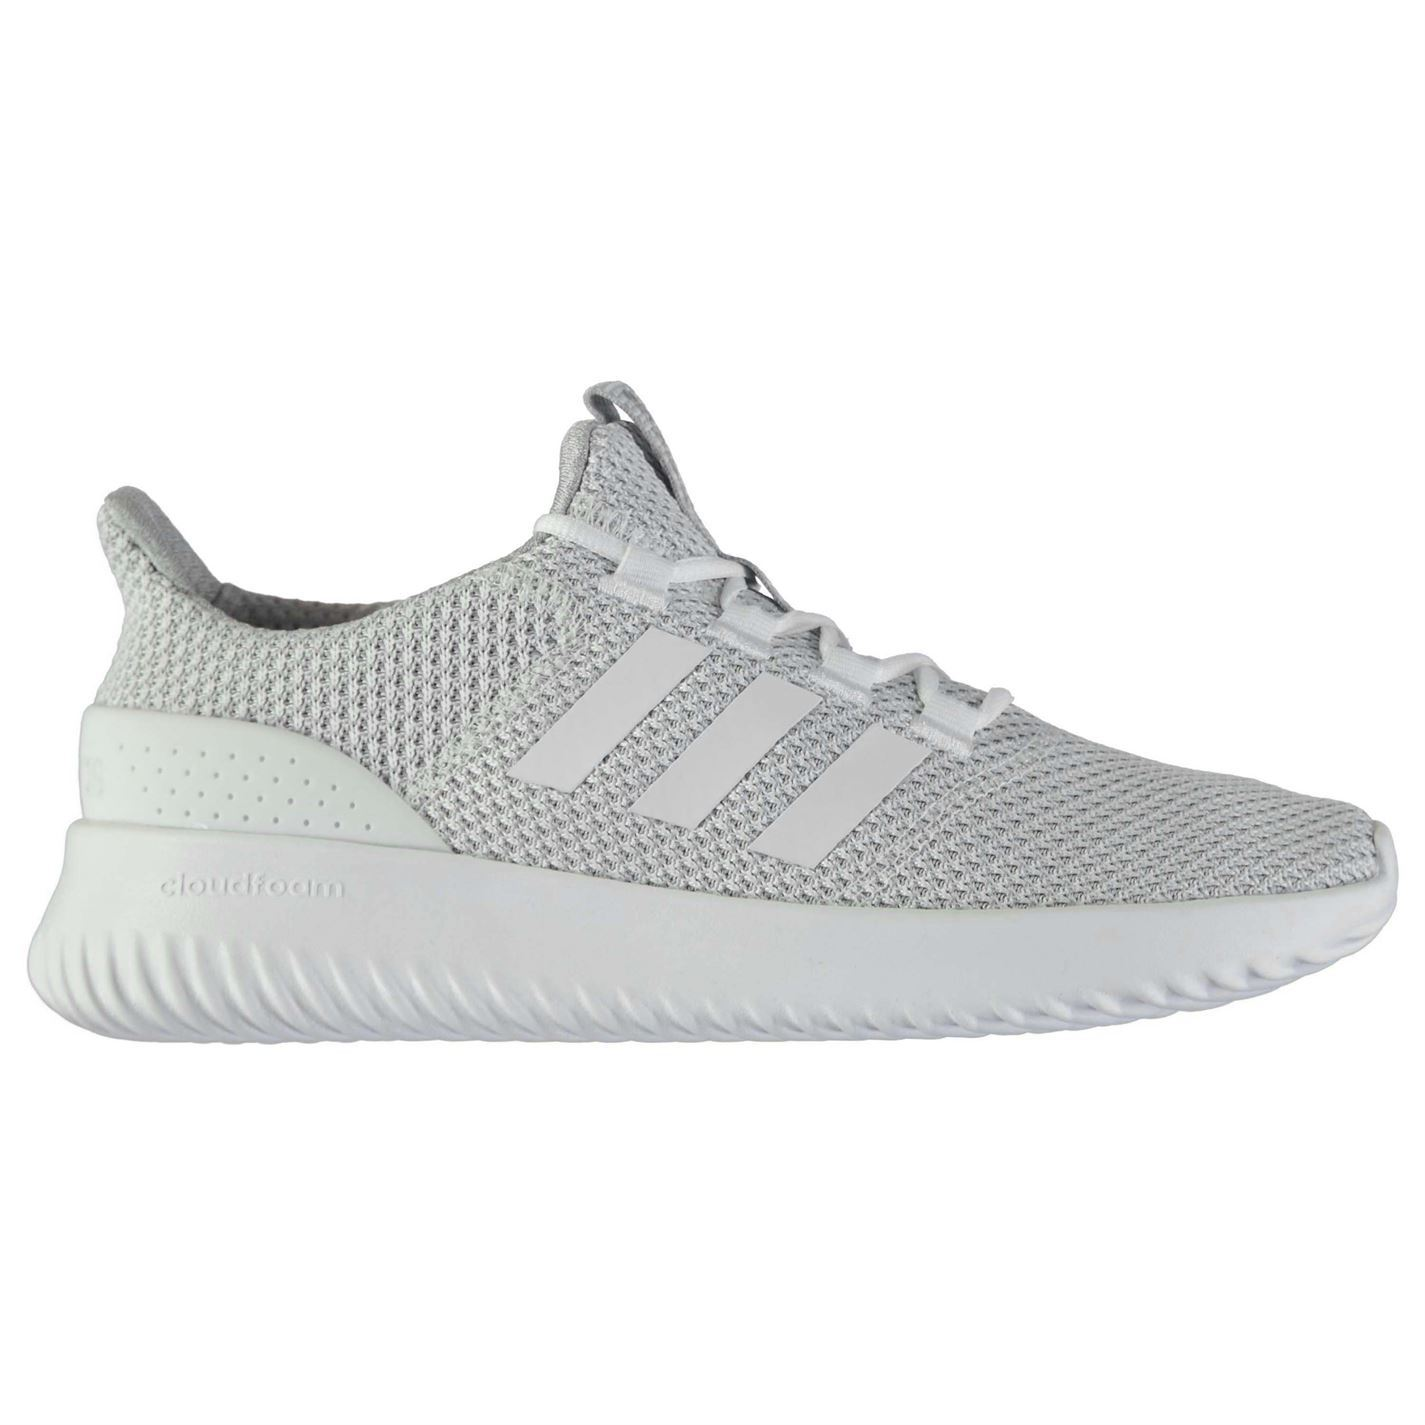 adidas-Mens-Cloudfoam-Ultimate-Trainers-Shoes-Lace-Up-